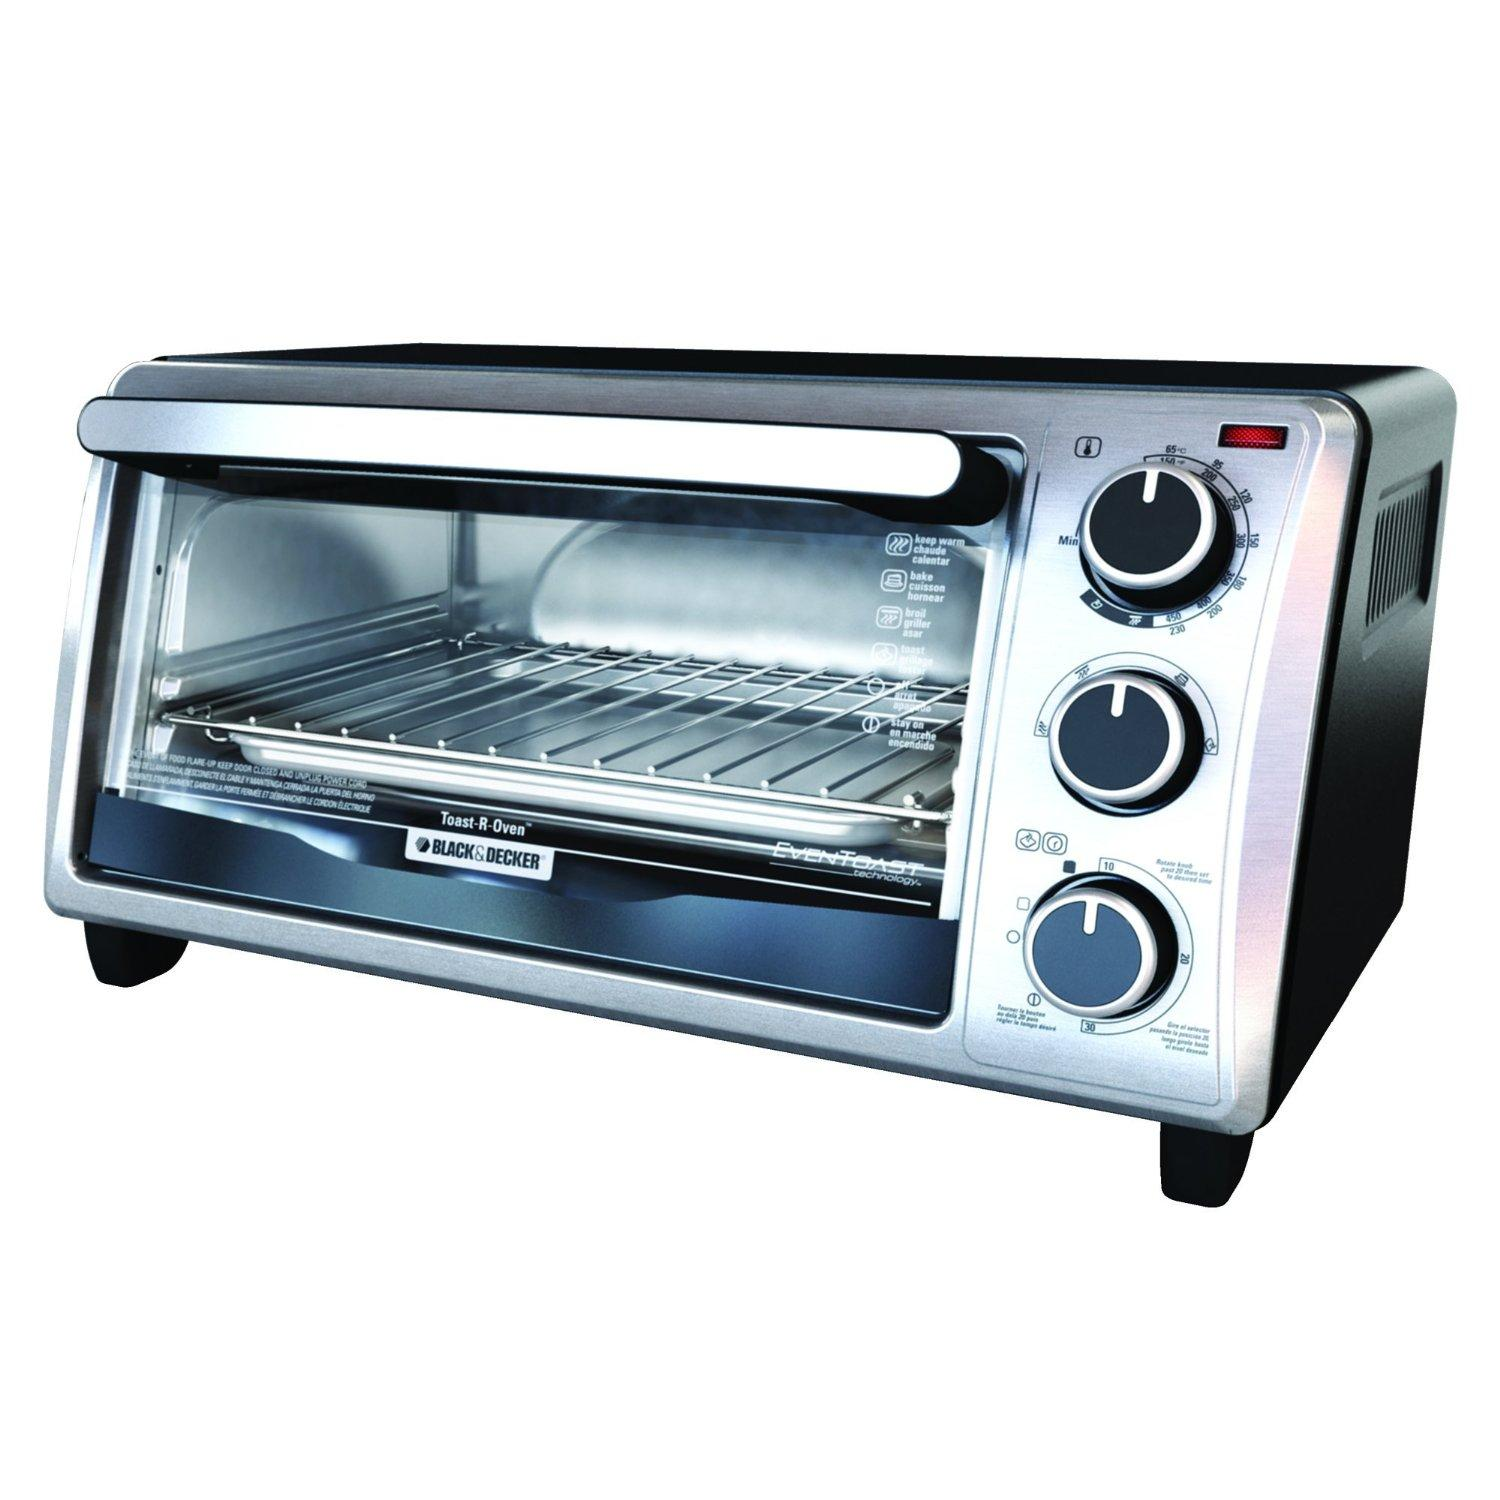 #1 Best Seller! Black & Decker TO1303SB 4-Slice Toaster Oven